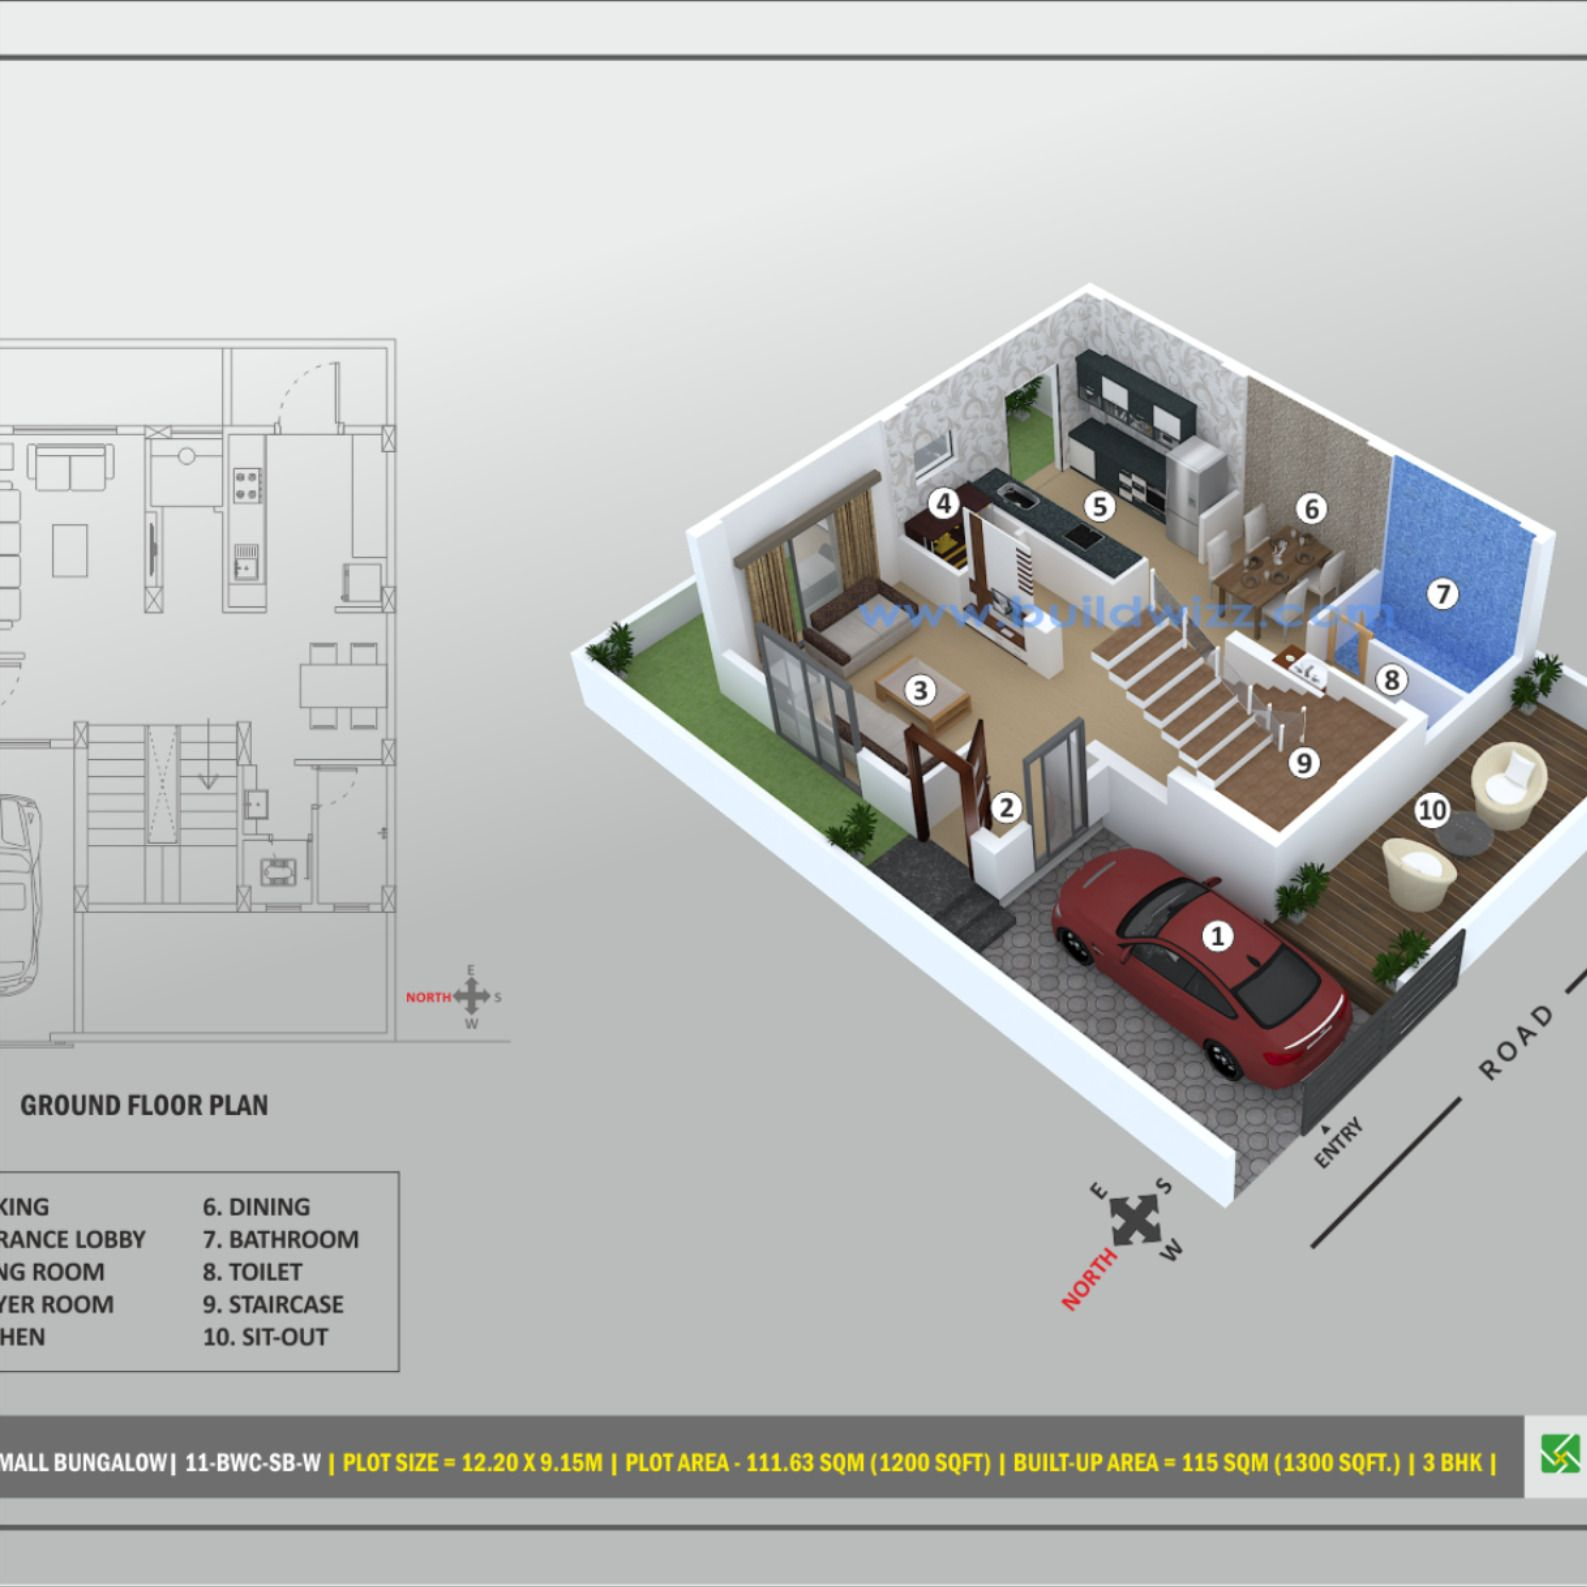 3 Bhk House Design Small Bungalow Built Up Area 115 Sqm 1300 Sqft Interior Design In 2020 Small Bungalow Indian Home Design House Design